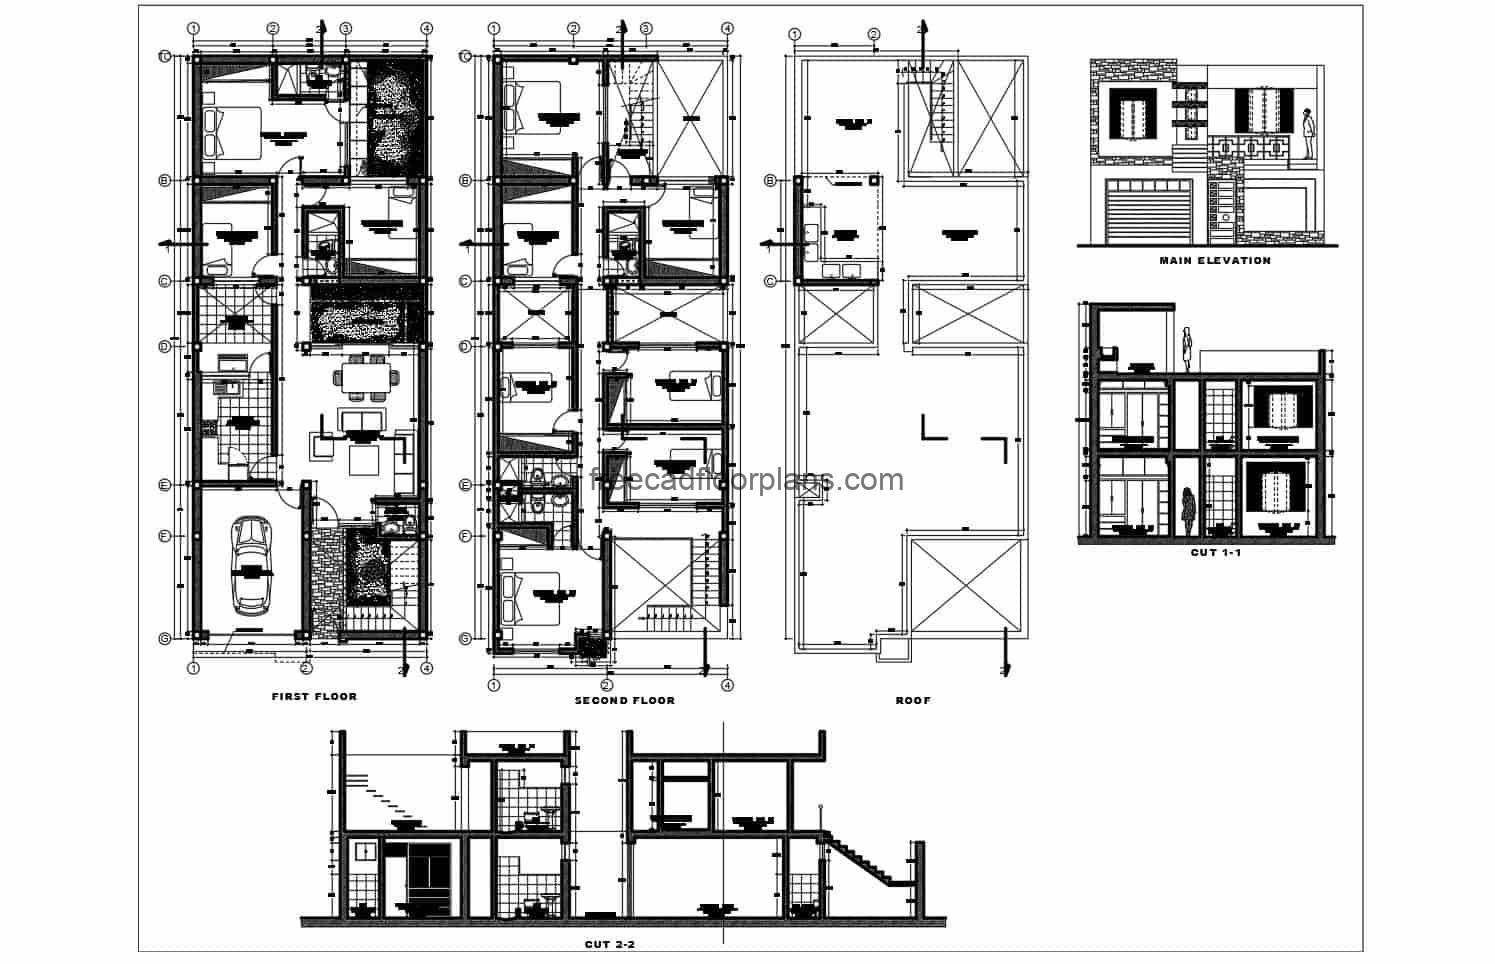 Complete architectural project of two-level residence in DWG format by Autocad, elongated rectangular house with 8 rooms in total, first level social area with garage, living room, dining room, side kitchen, laundry area, bathroom, intermediate and backyard. Second level private area with 7 bedrooms and three bathrooms. The set of plans contains architectural, dimensional, elevations, sections, electrical, sanitary, structural and structural details. Blueprints 2d for free download with interior Autocad blocks.